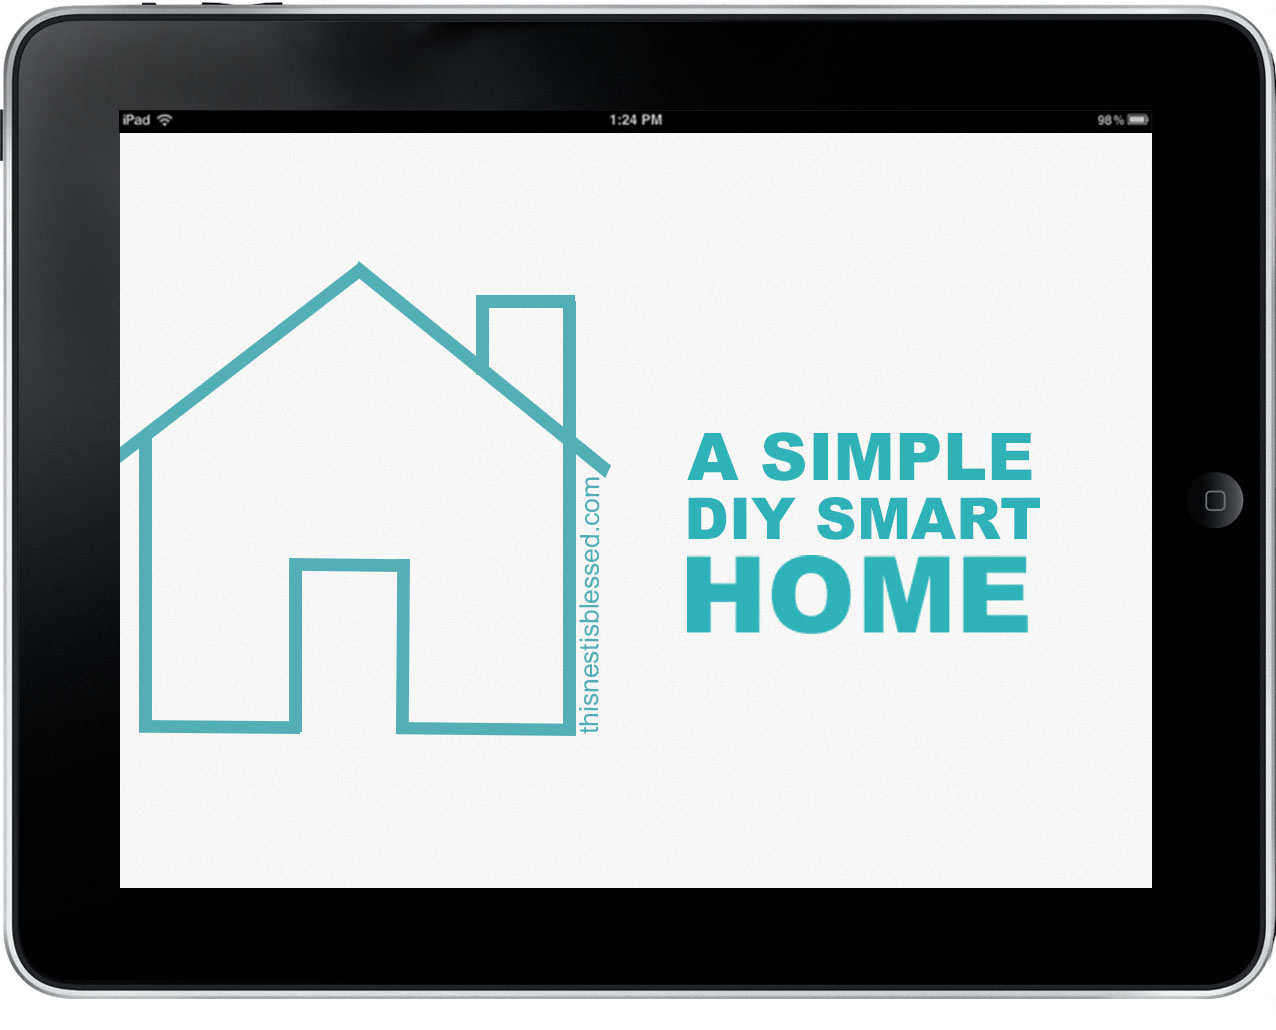 A simple diy smart home this nest is blessed for Minimalist house logo